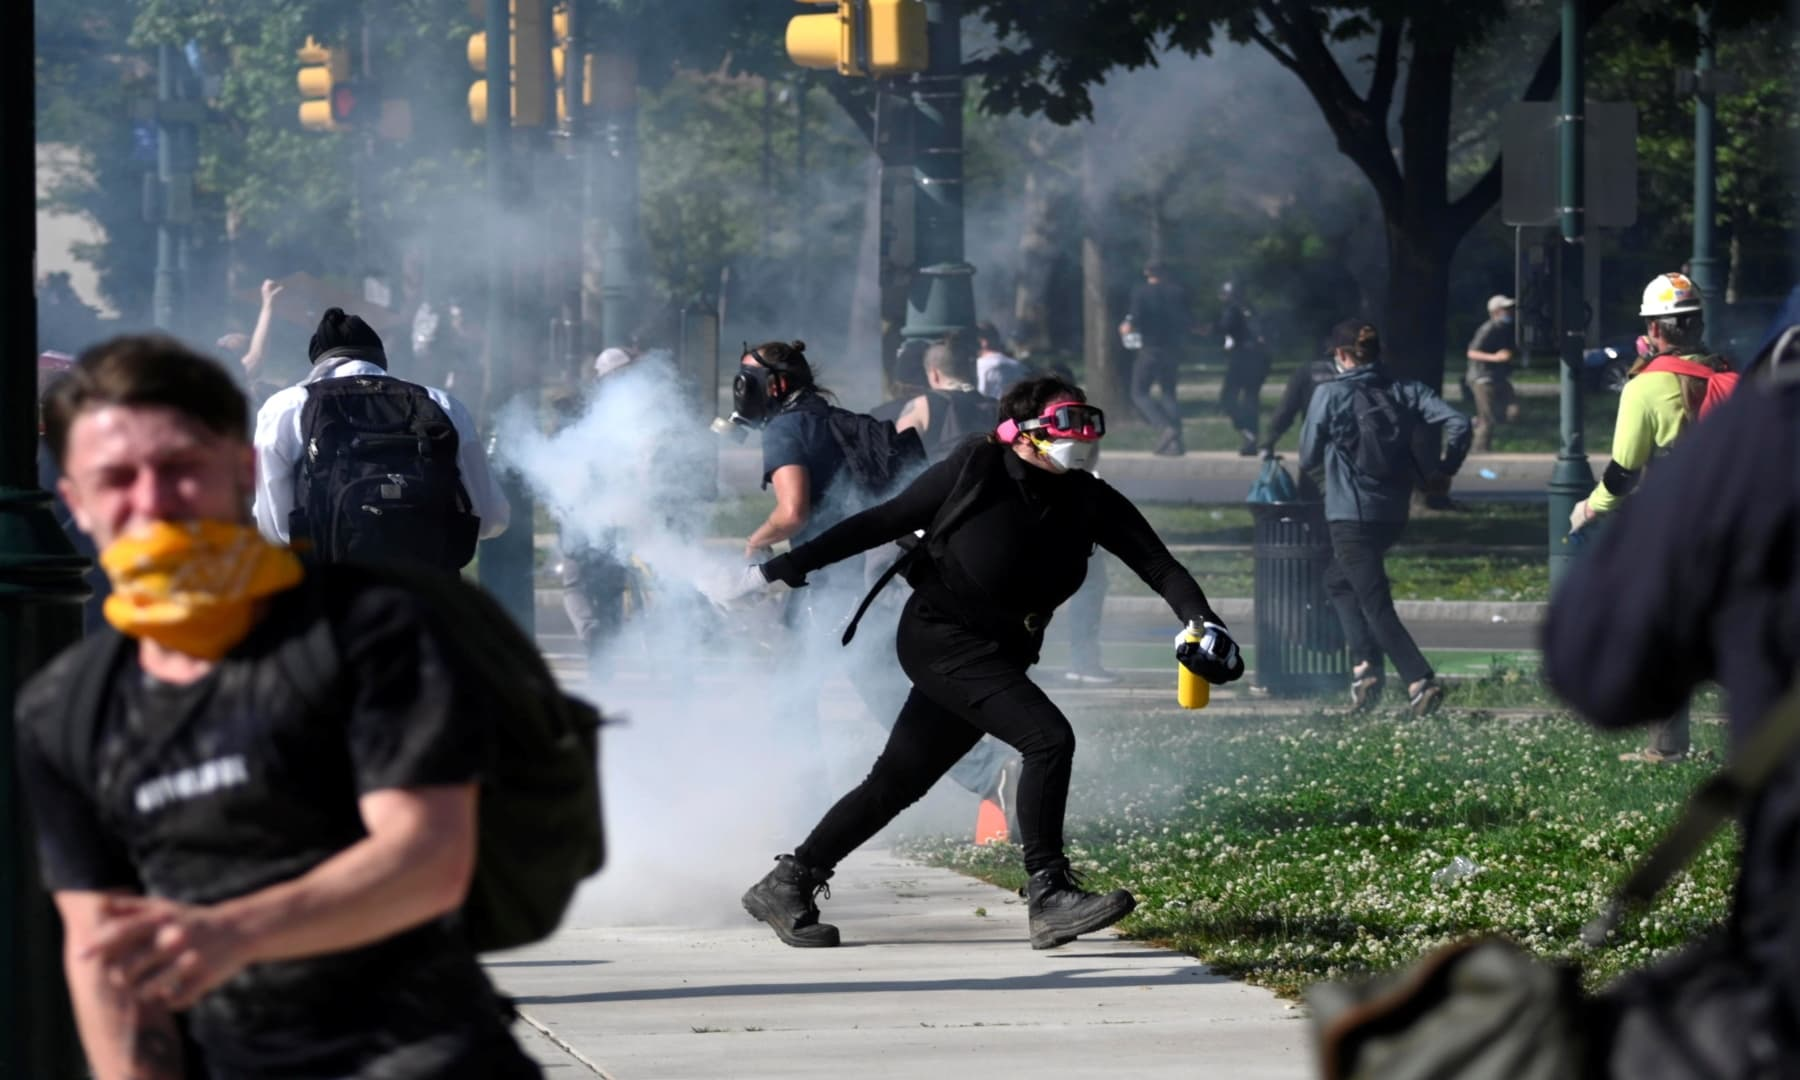 A protester returns a tear gas cannister during a march in Philadelphia, Pennsylvania on June 1.— Reuters